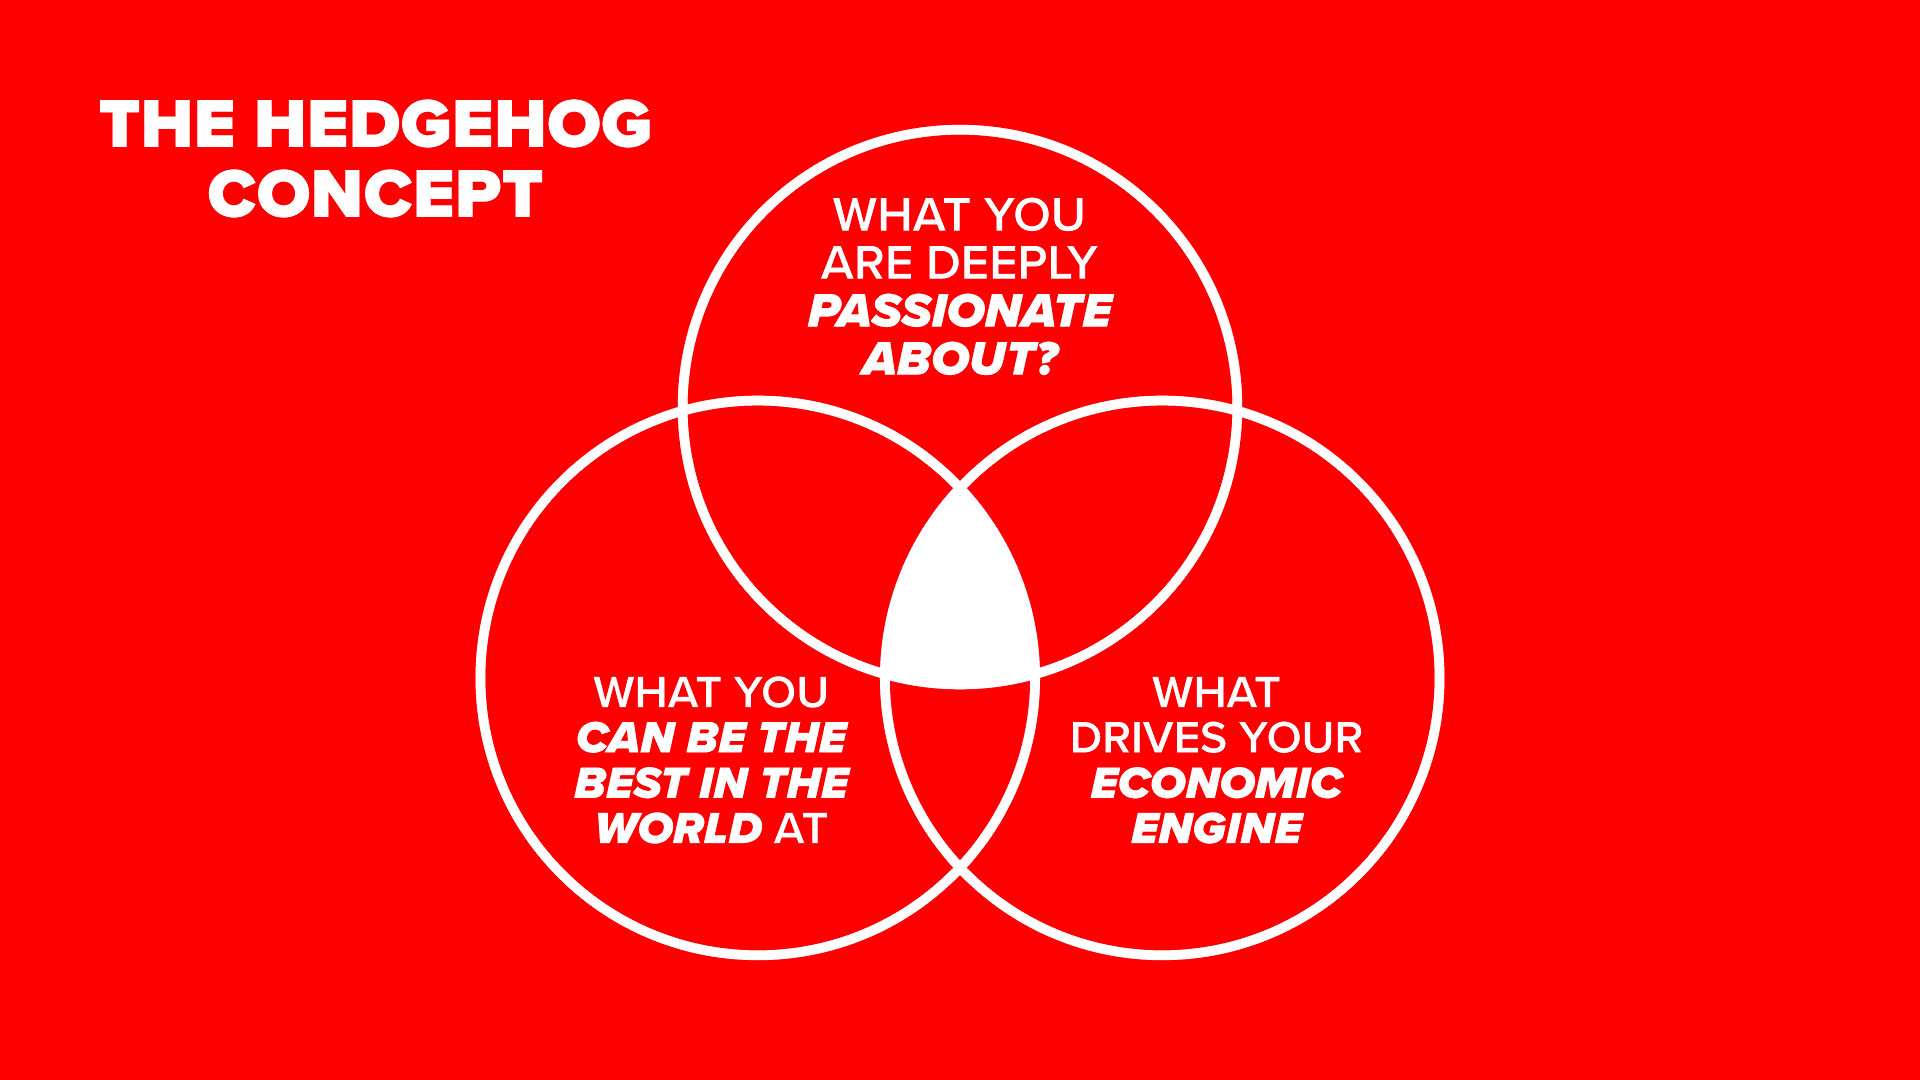 The Hedgehog Concept From Good To Great